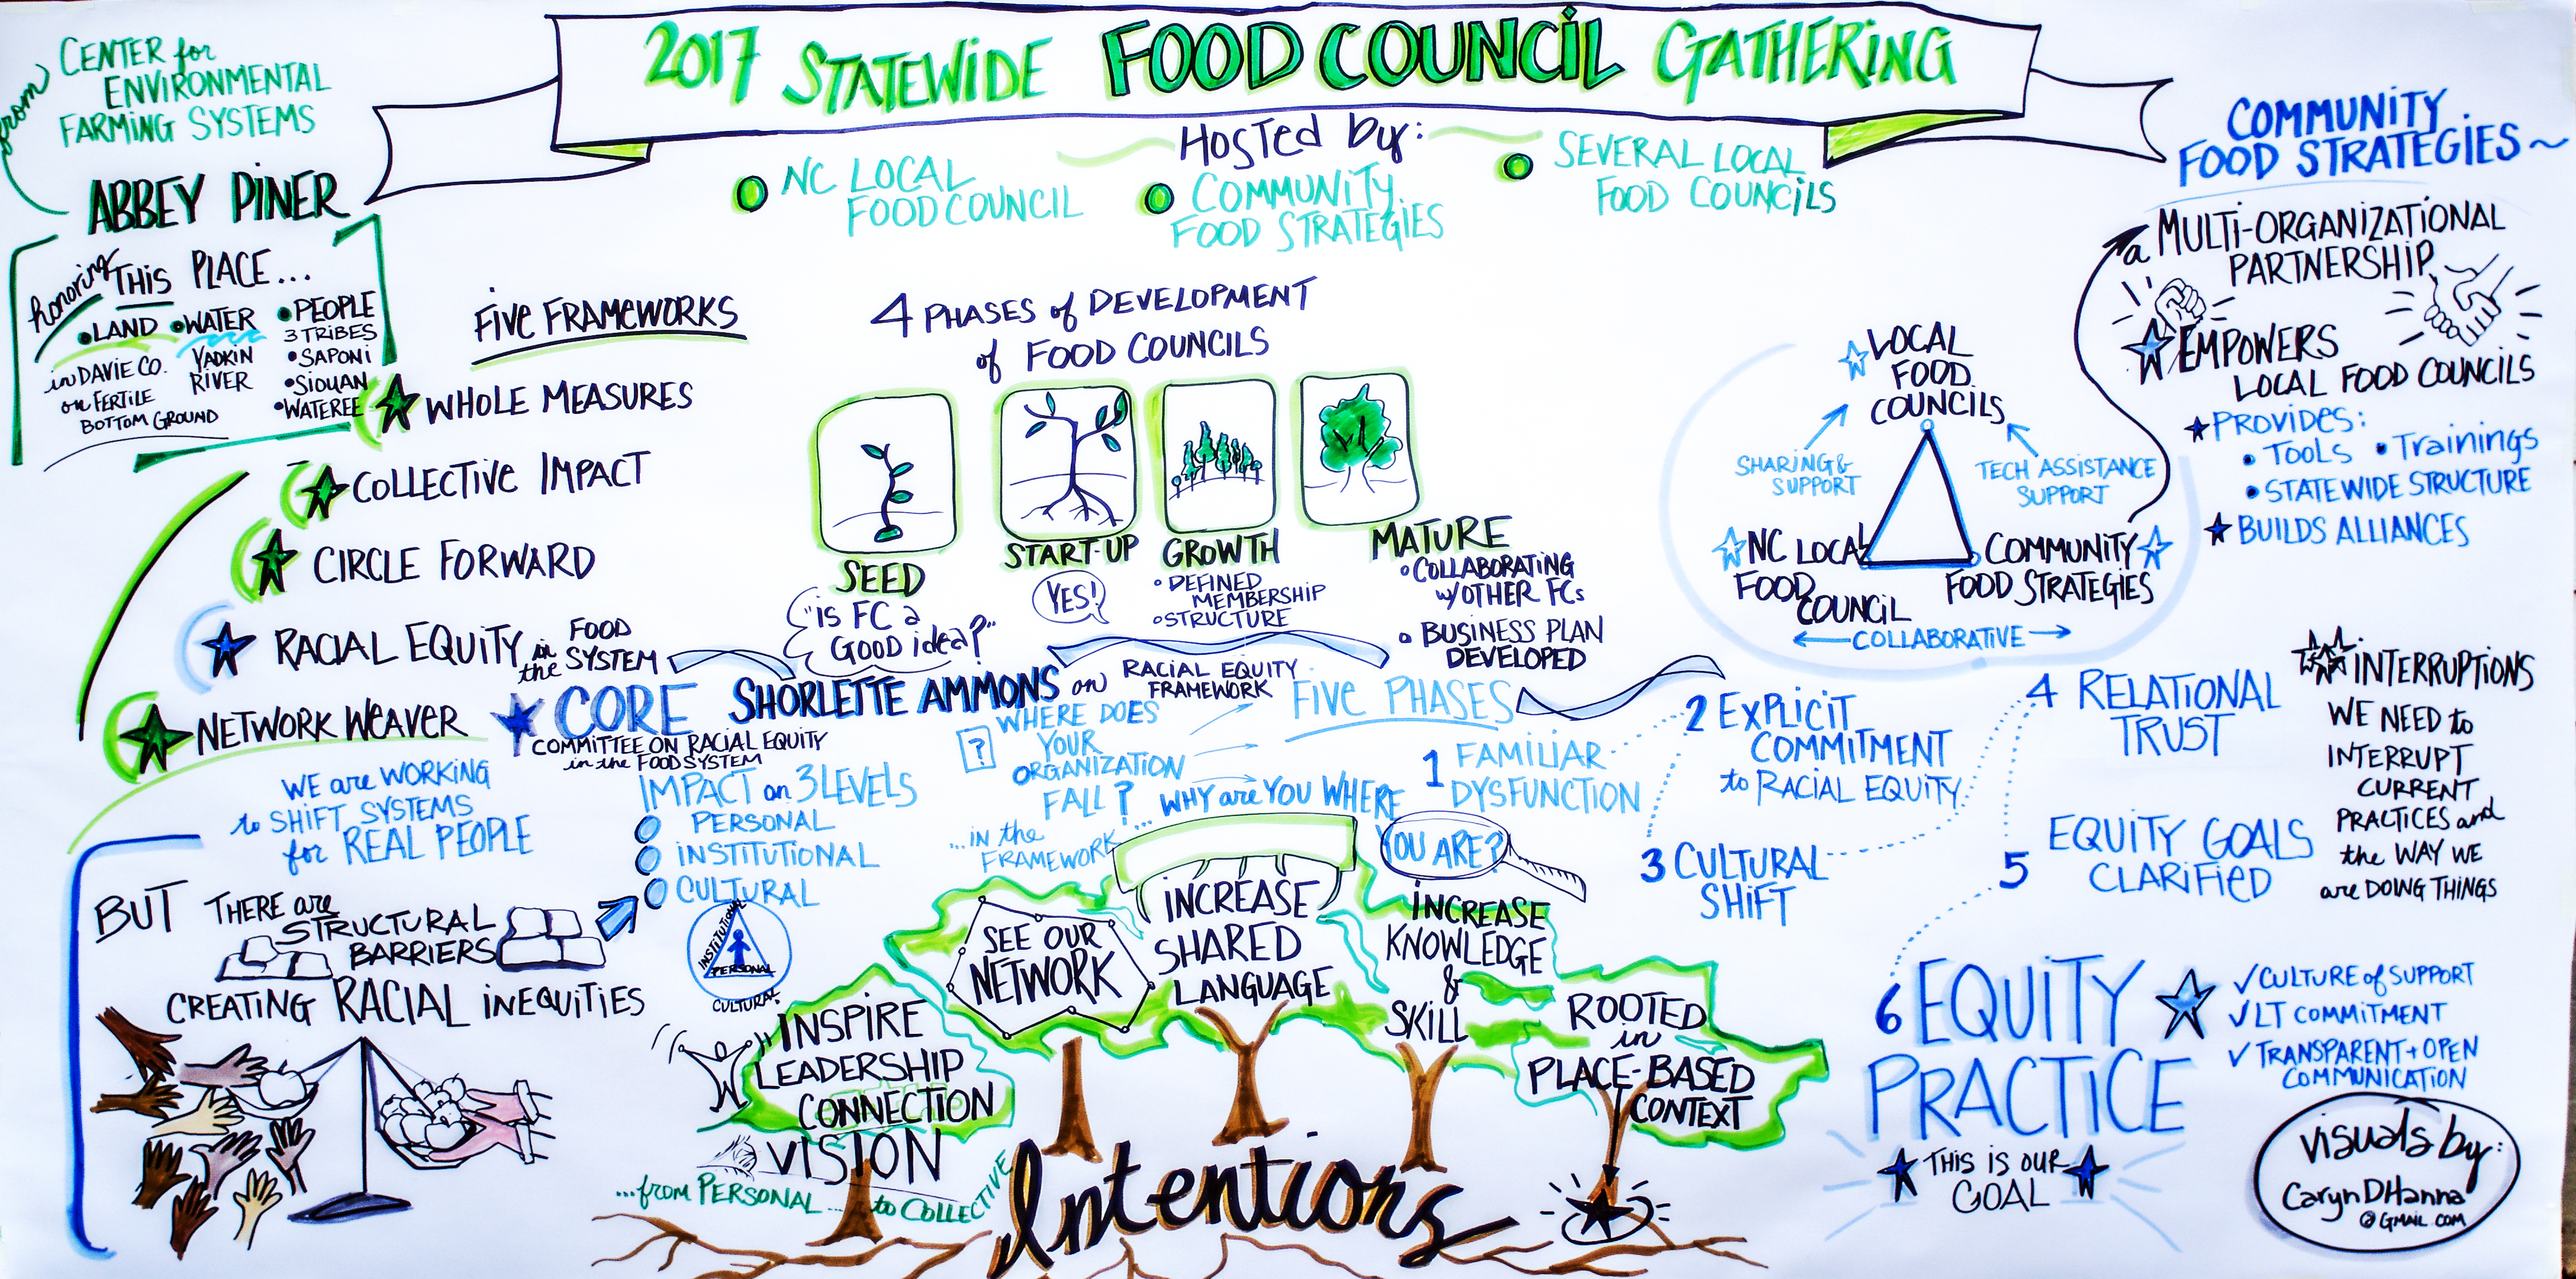 2017 NC Statewide Food Council Gathering